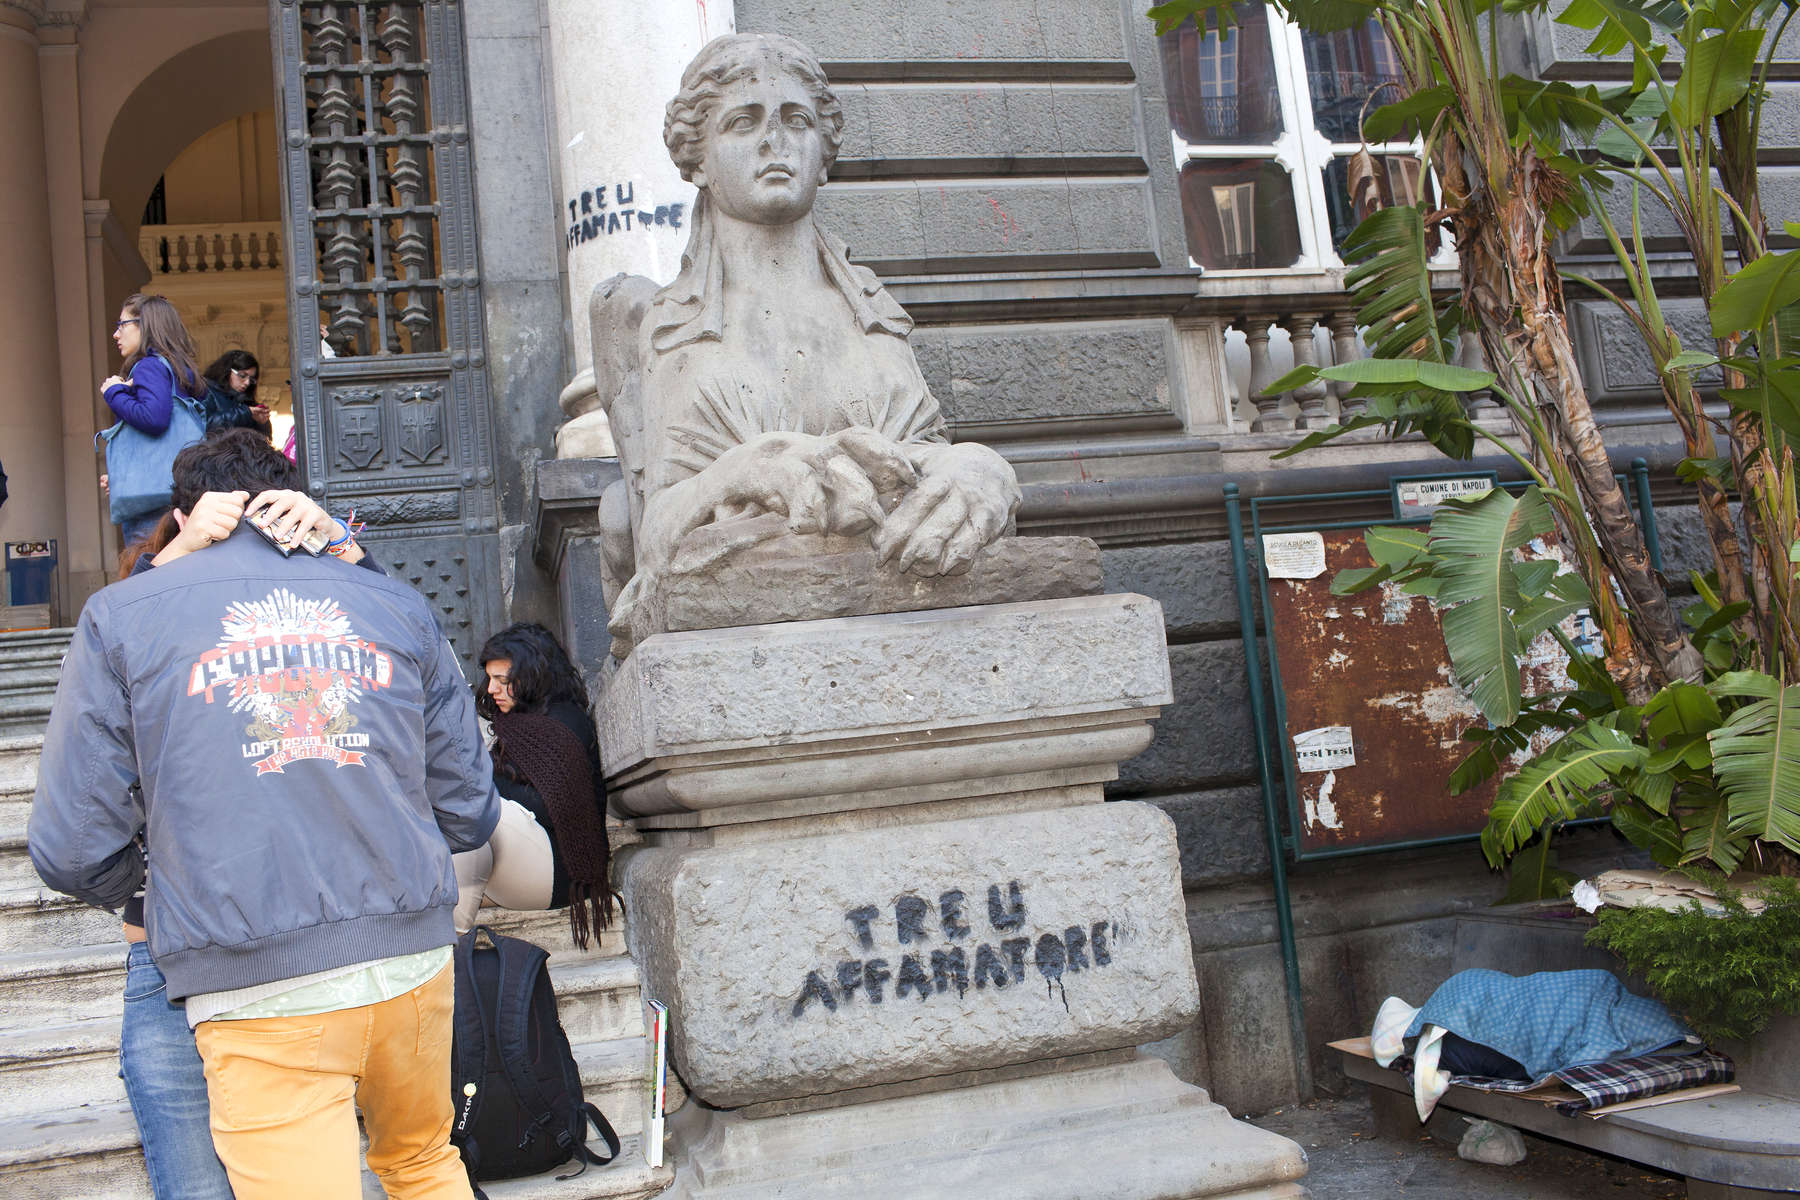 Students outside the Universita Degli Studi di Napoli {quote}Federico II{quote} on Corso Umberto I in the centre of Naples.Naples is a city on the west coast in Southern Italy and is the capital of the Campania region.+44(0)7711058090peter@peterdench.comPhotography ©Peter DenchCommissioned by:Dagmar Seeland, London OfficeHarald Menk, Hamburg Office